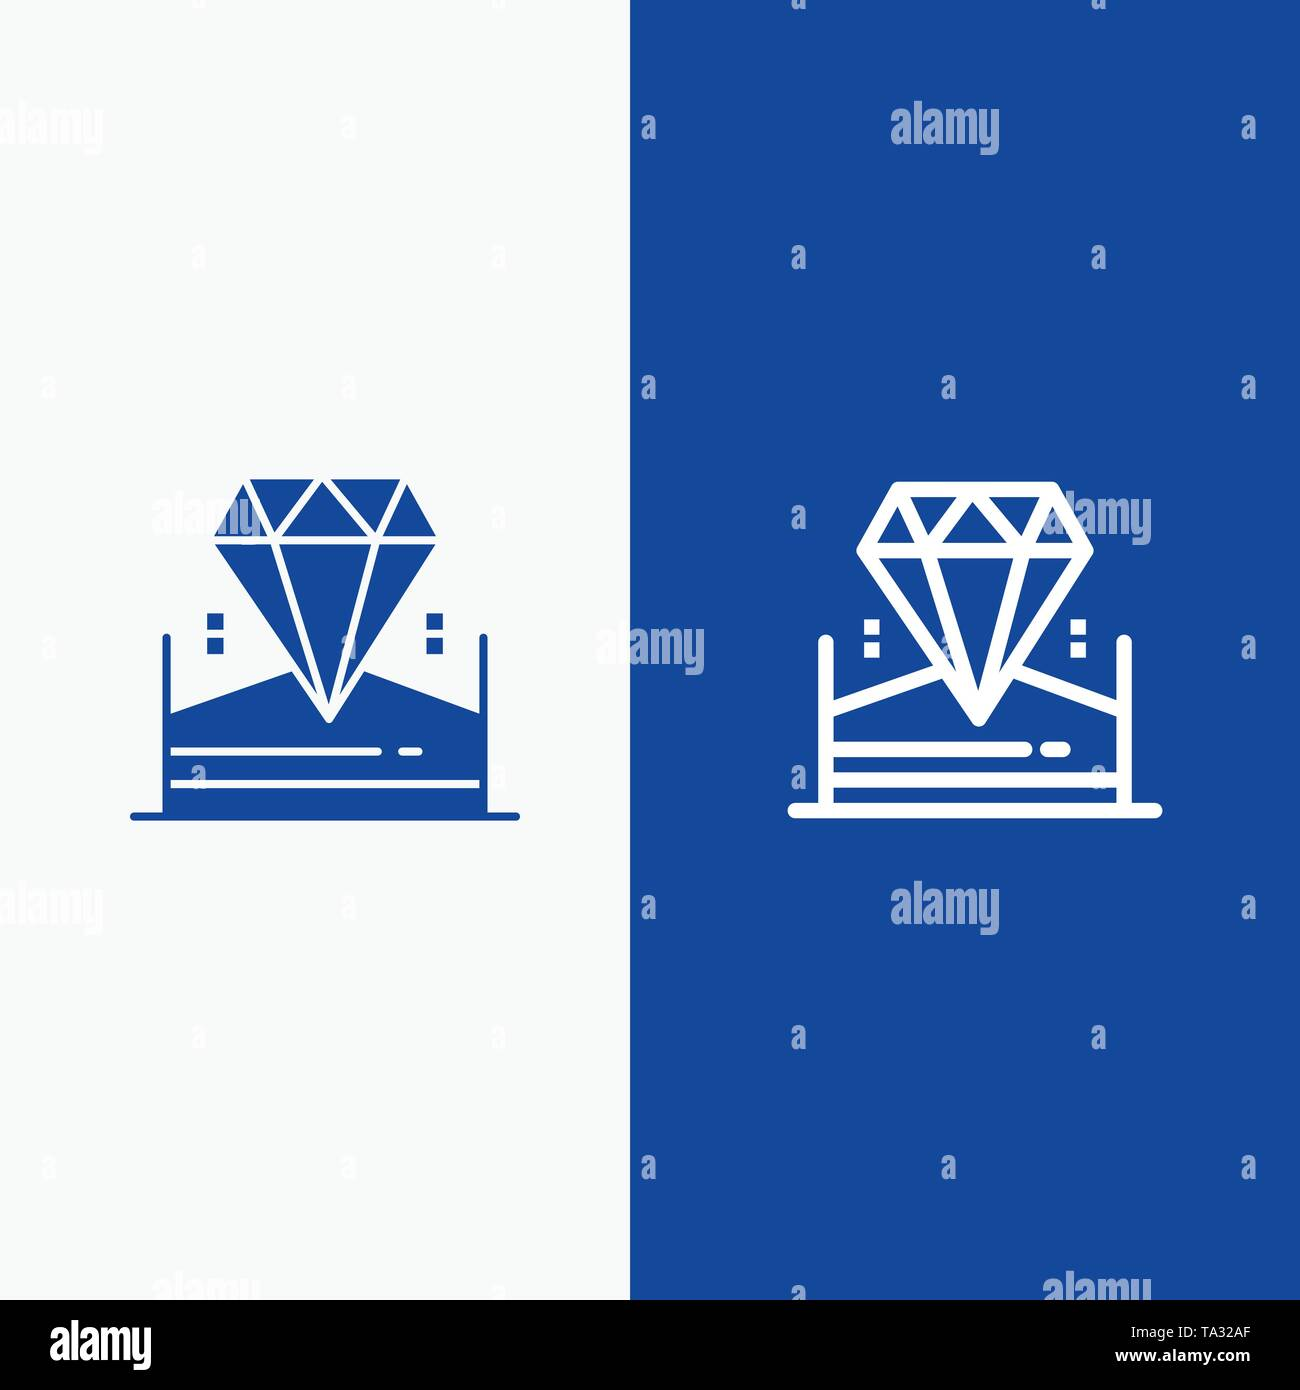 Brilliant, Diamond, Jewel, Hotel Line and Glyph Solid icon Blue banner - Stock Image